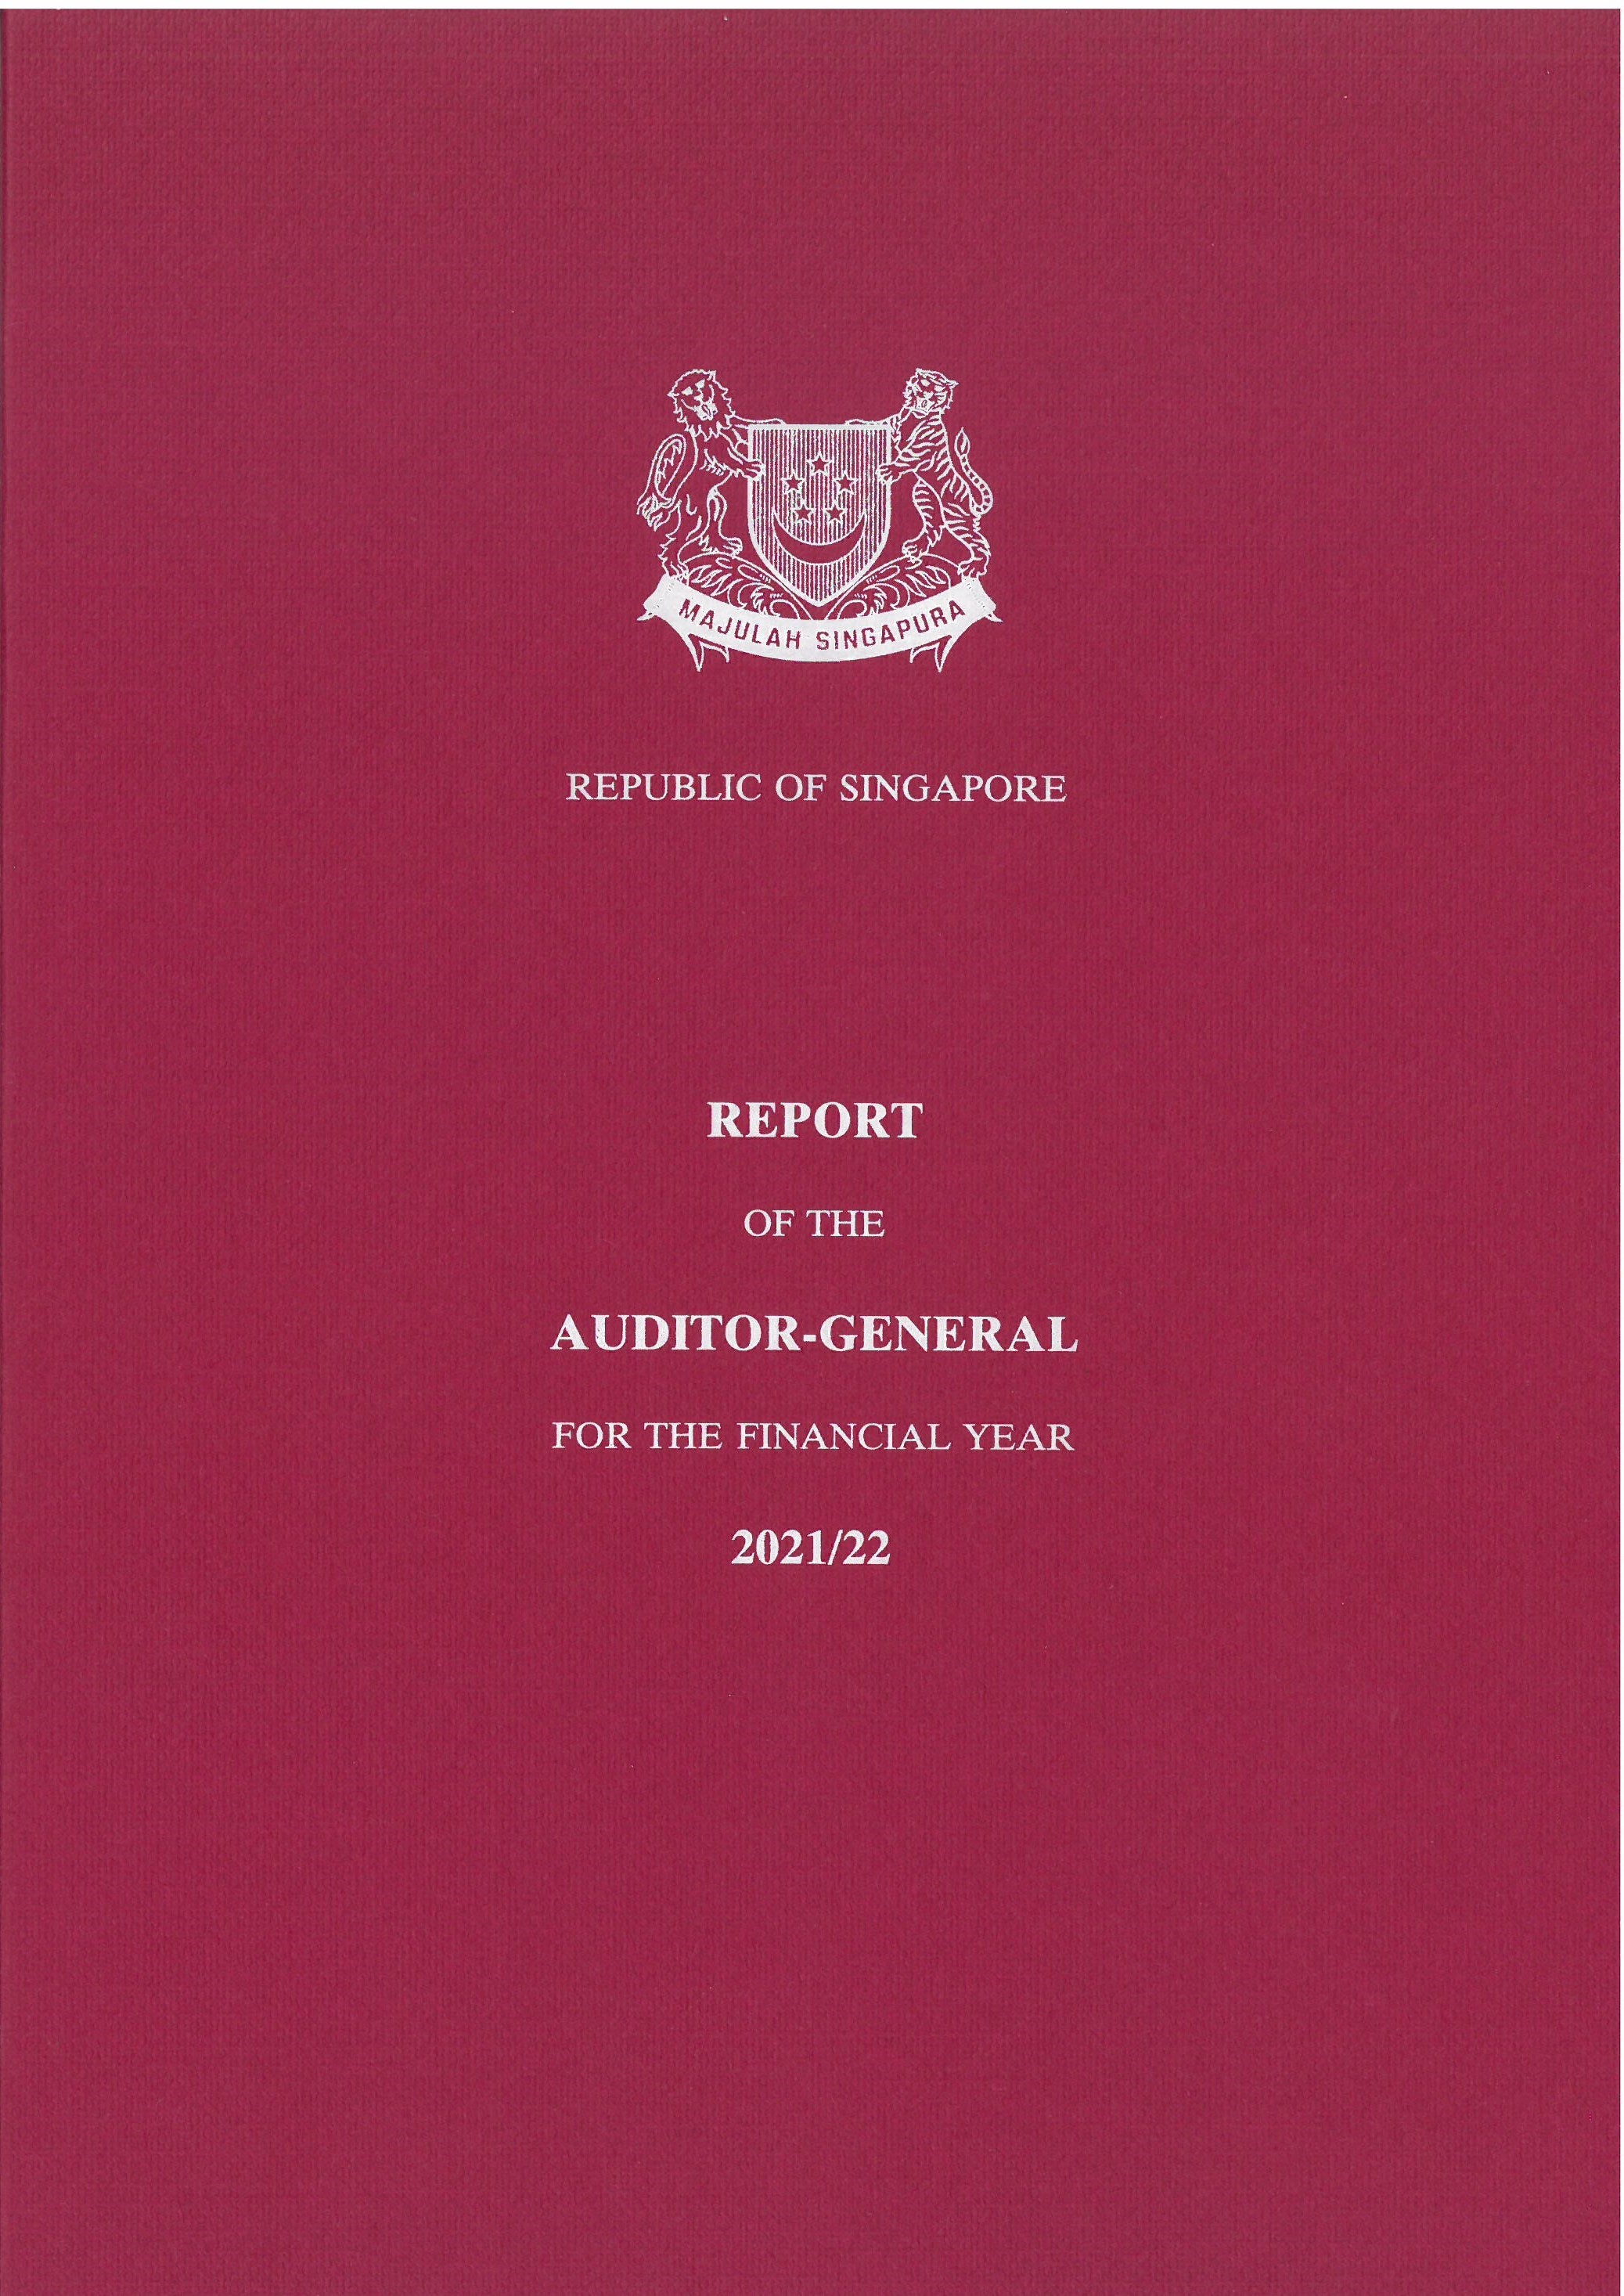 The Report of Auditor General